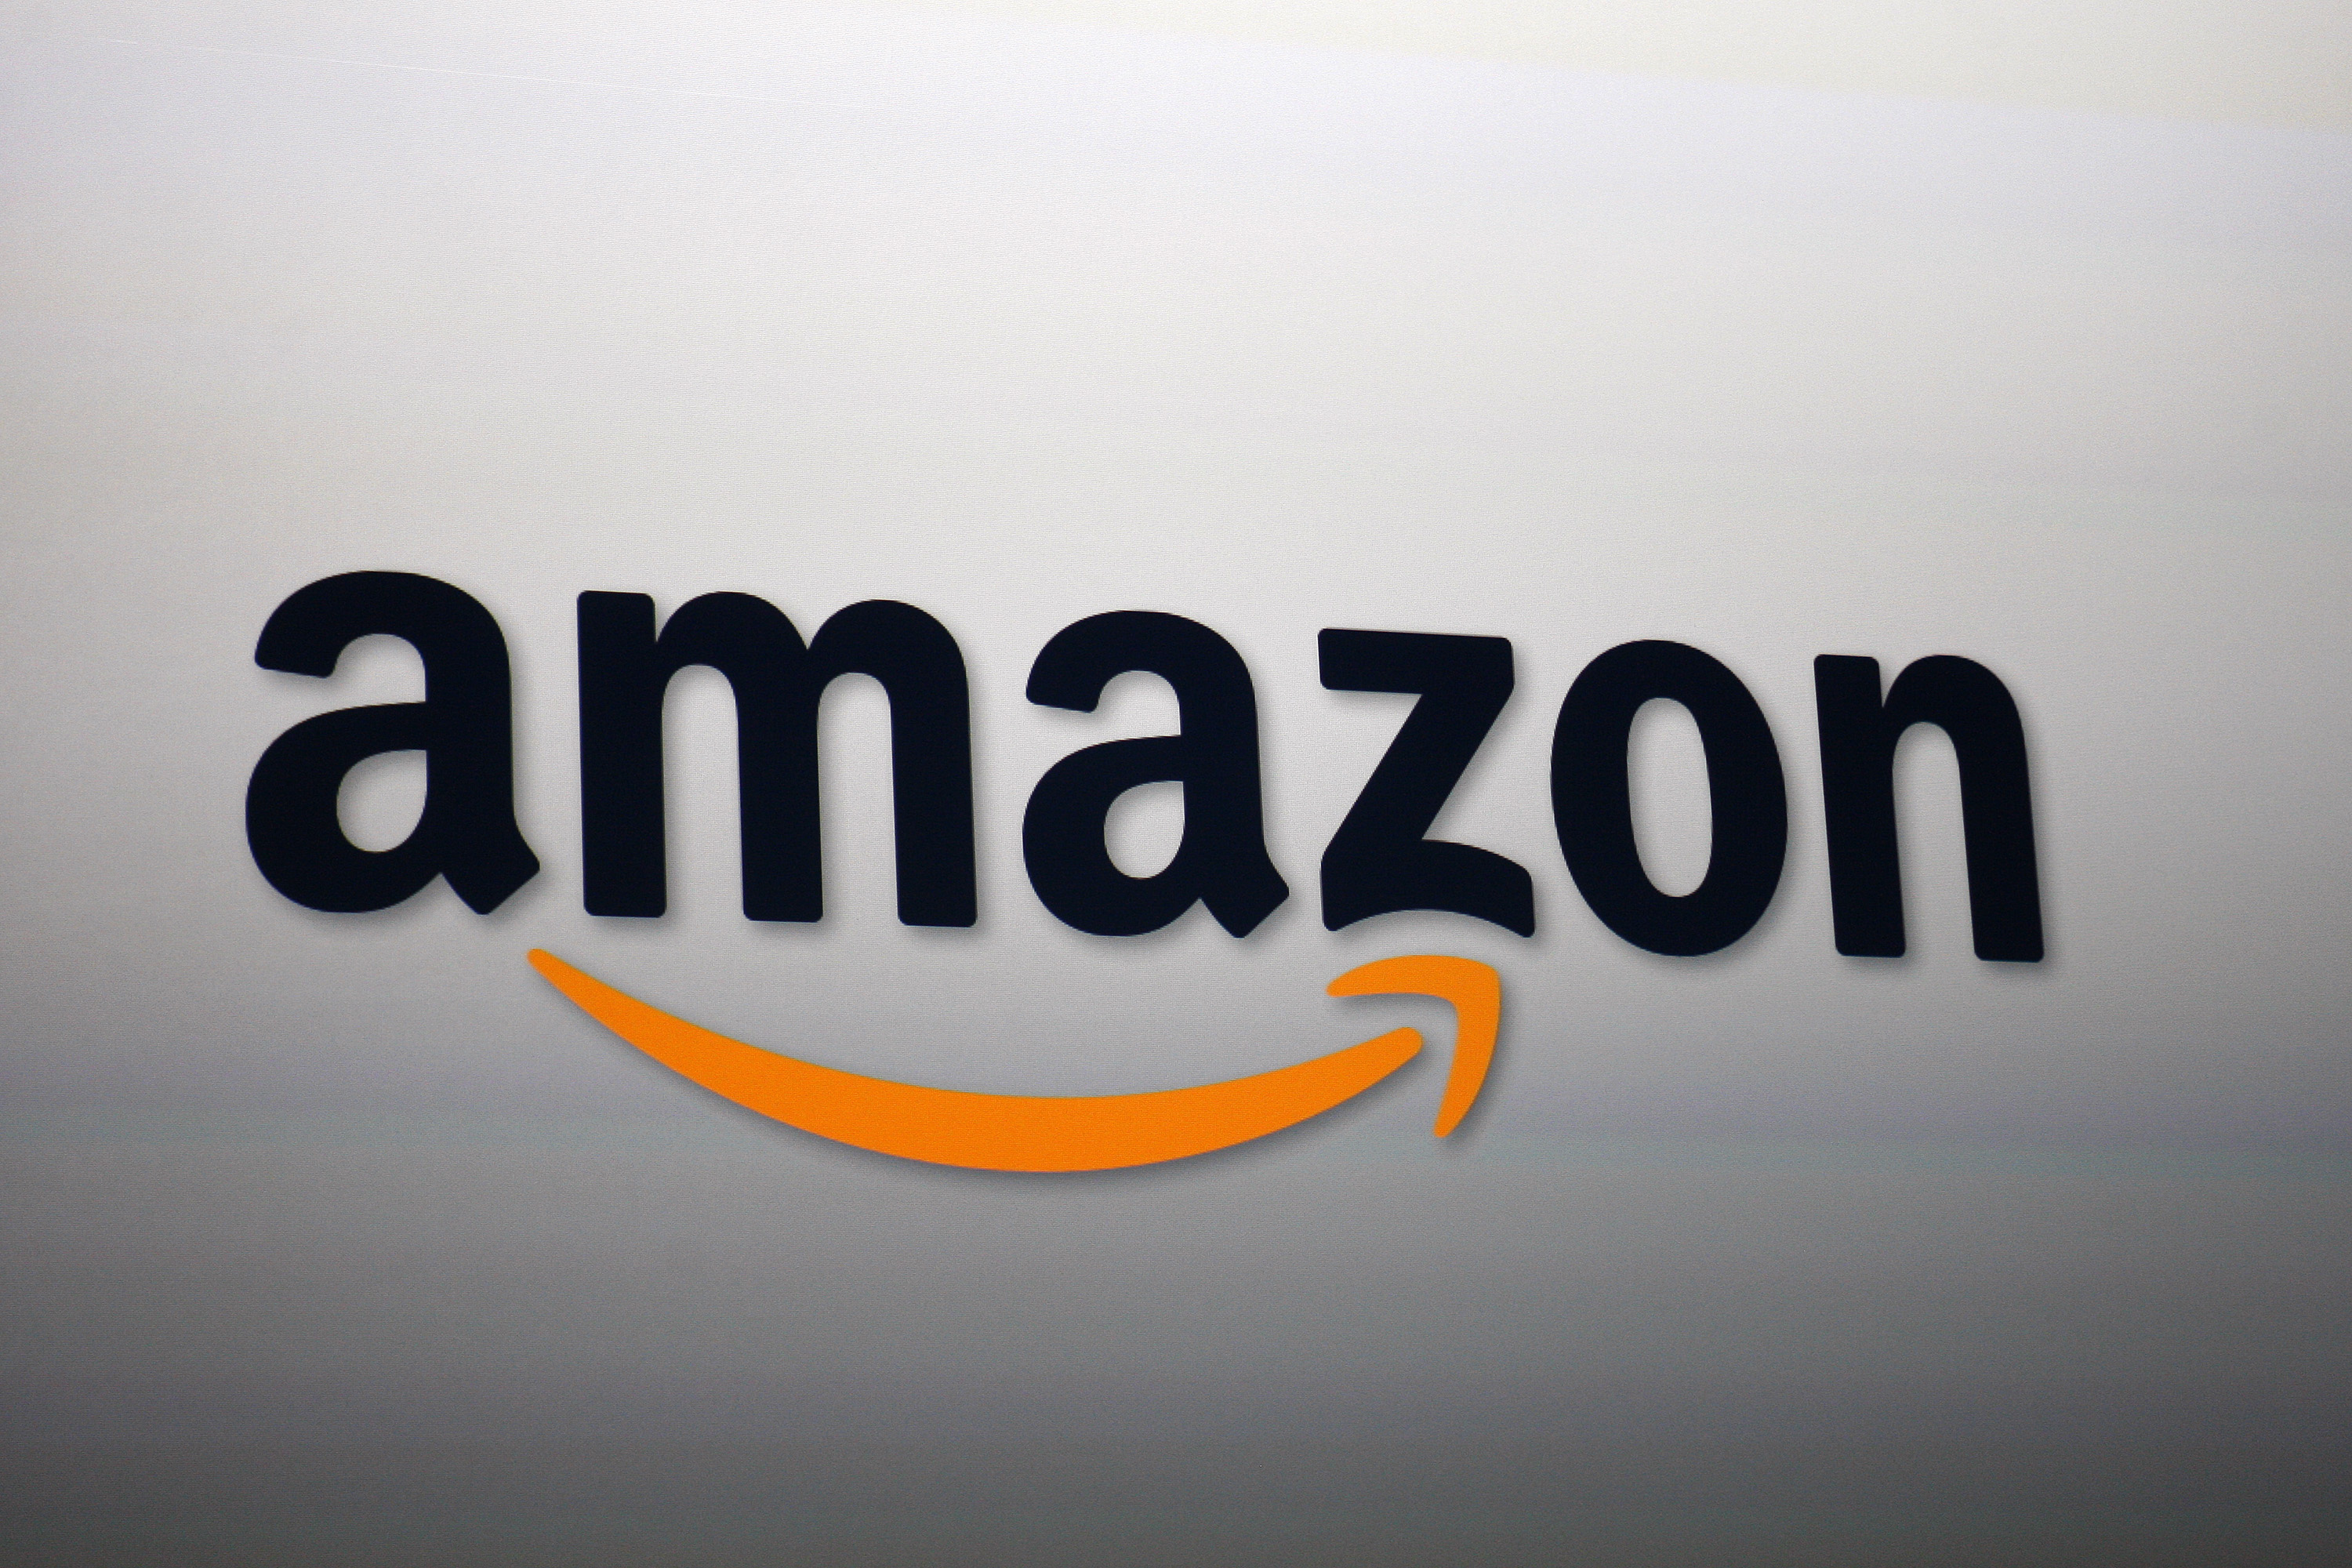 Amazon's logo. Photo by David McNew/Getty Images